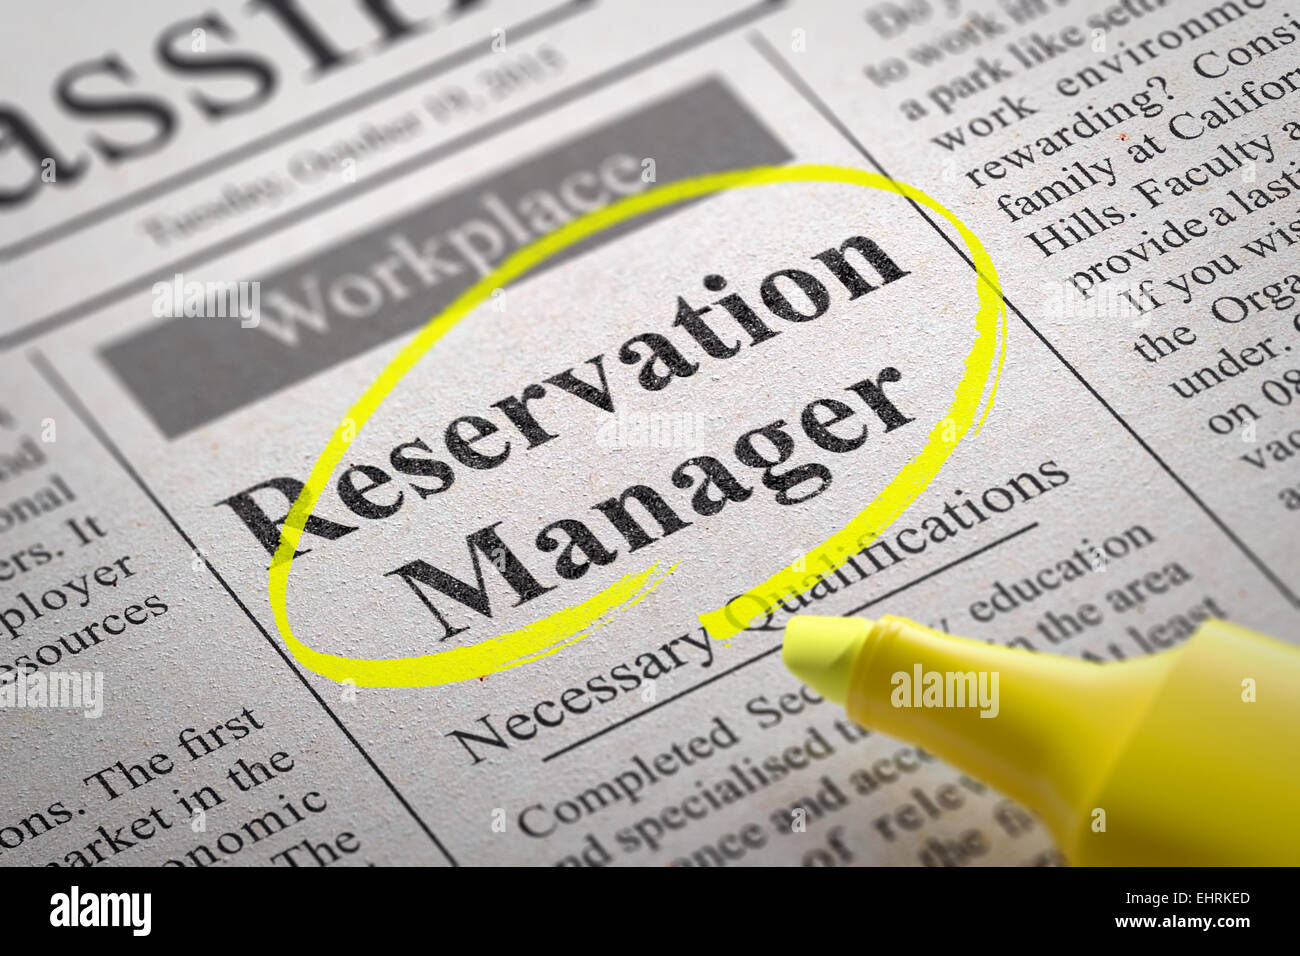 Reservation Manager Jobs in Newspaper. - Stock Image